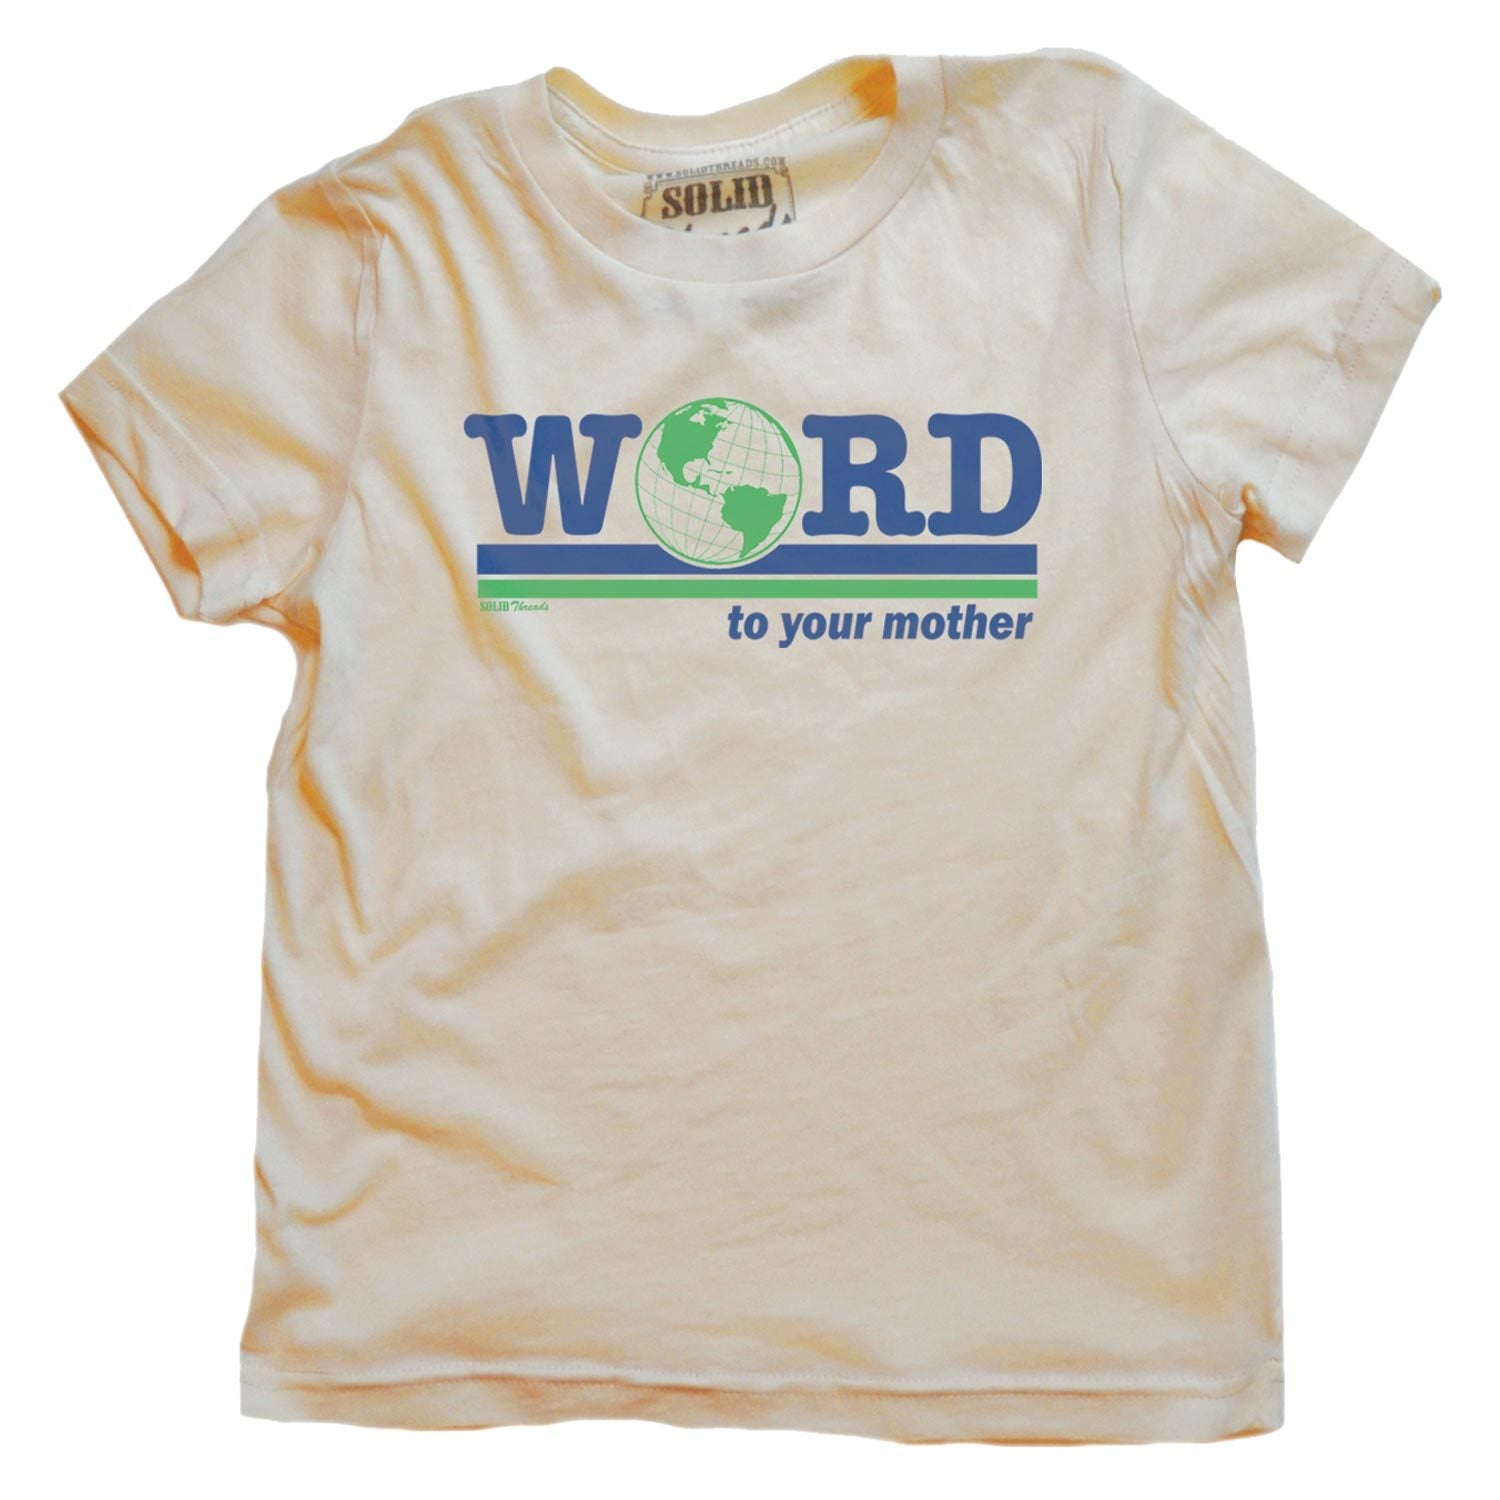 Toddler's Word to Your Mother Vintage Inspired T-shirt | Retro Climate Change Graphic Tee | Solid Threads